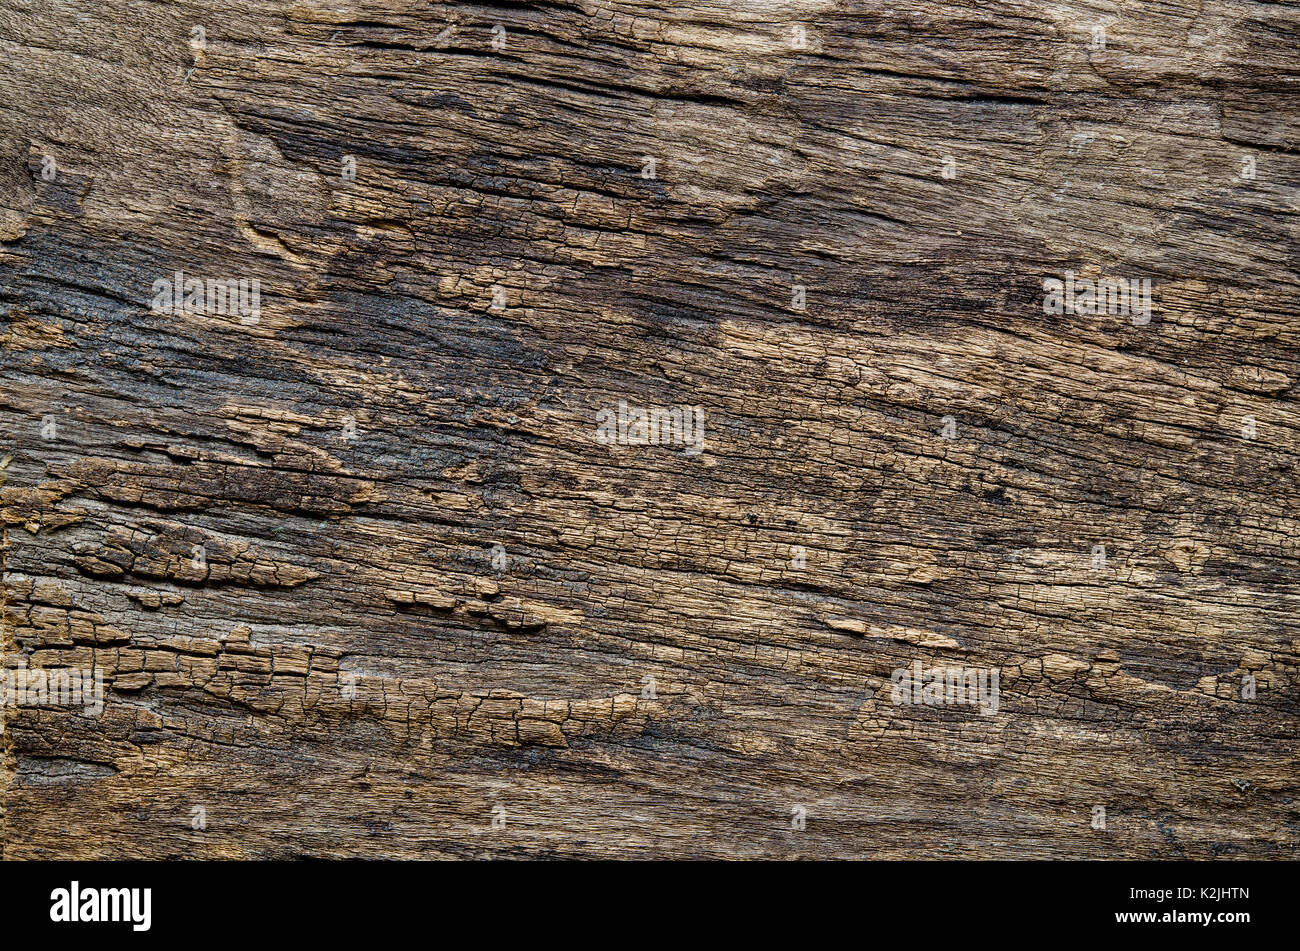 Old natural wooden background. Closeup grunge wooden table texture. Useful as for background. - Stock Image